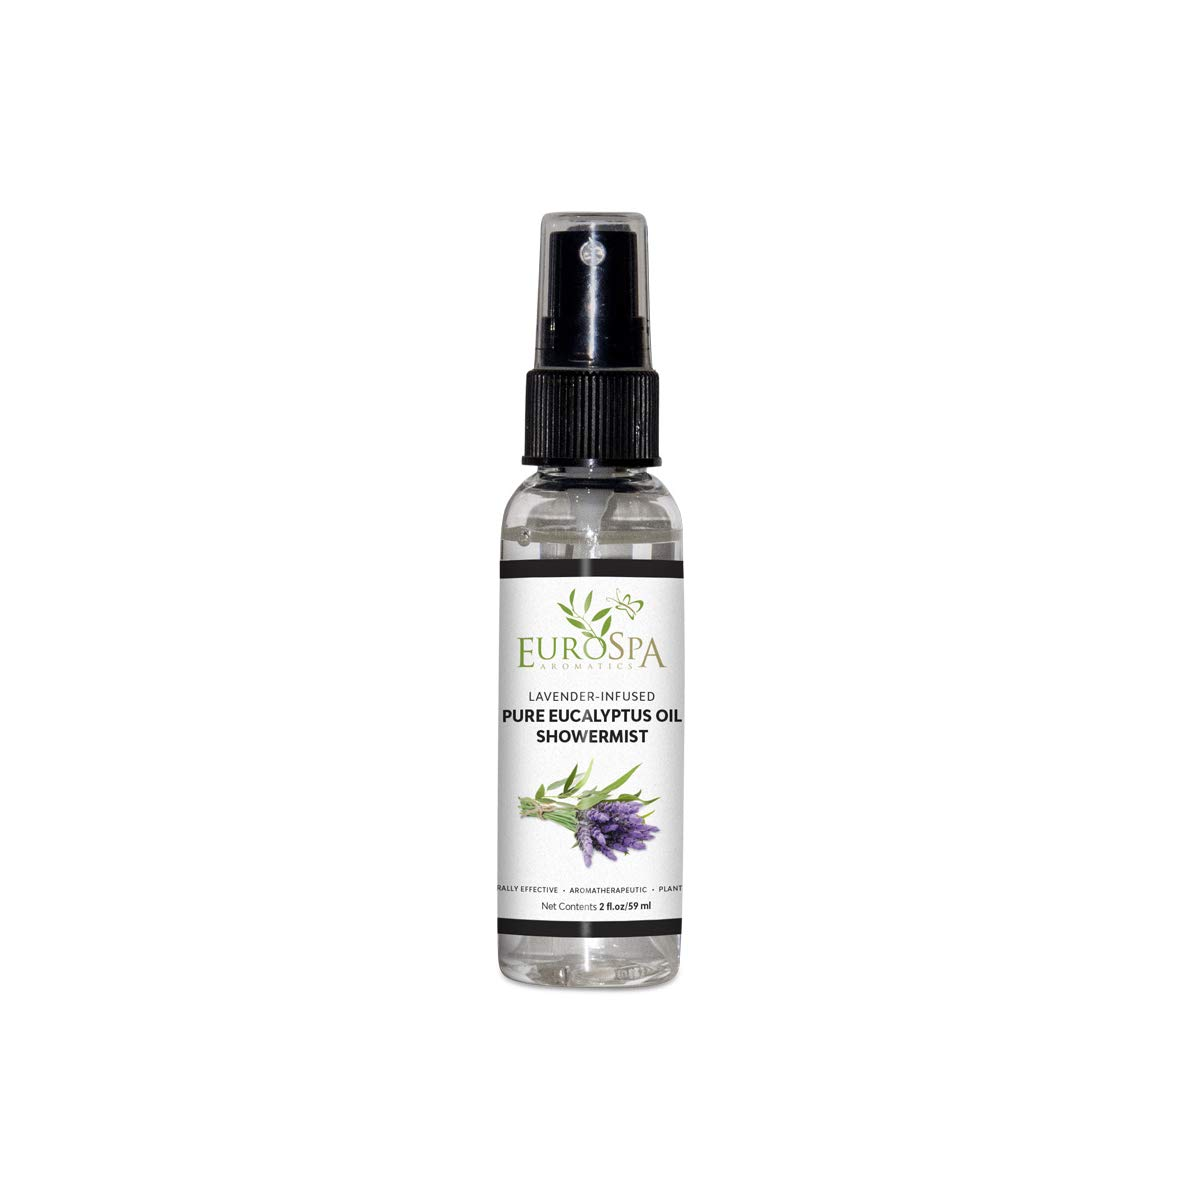 https://www.eatingwell.com/article/7825787/this-aromatherapy-mist-turns-your-shower-into-a-spa/51iy-pxn1-l-_sl1180_/